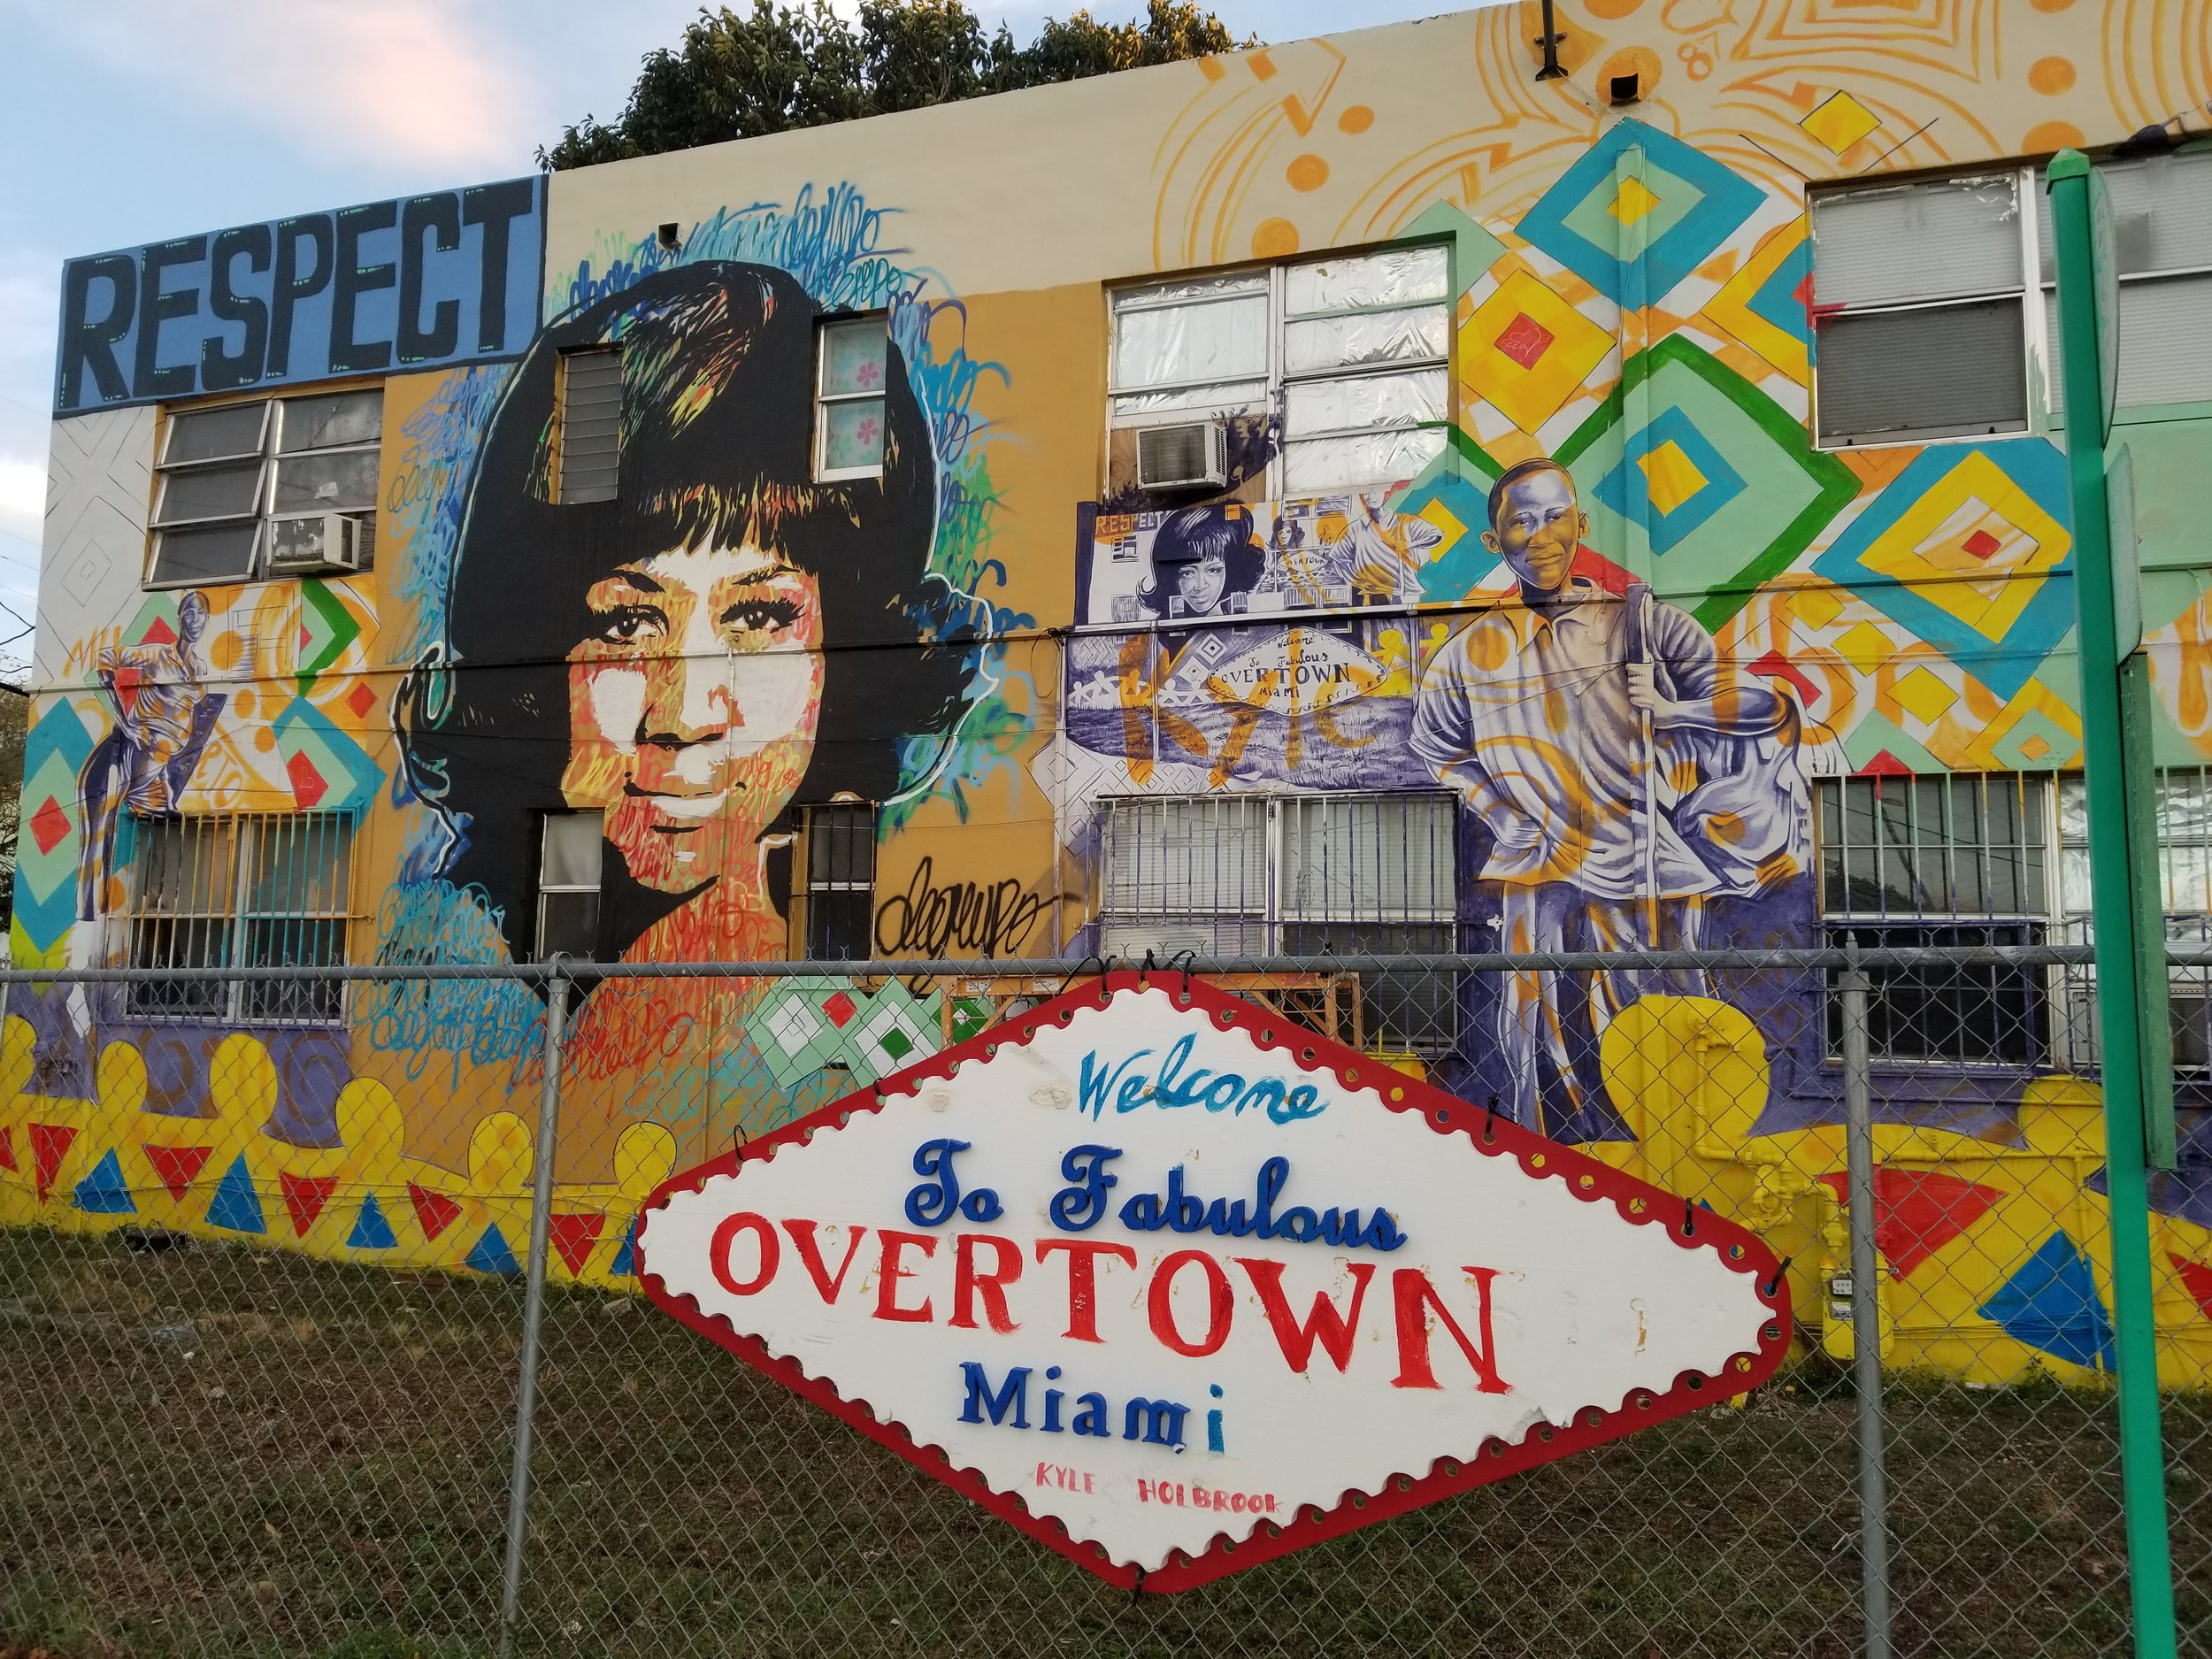 Welcome to Overtown - Wynwood must show respect to Historic Overtown